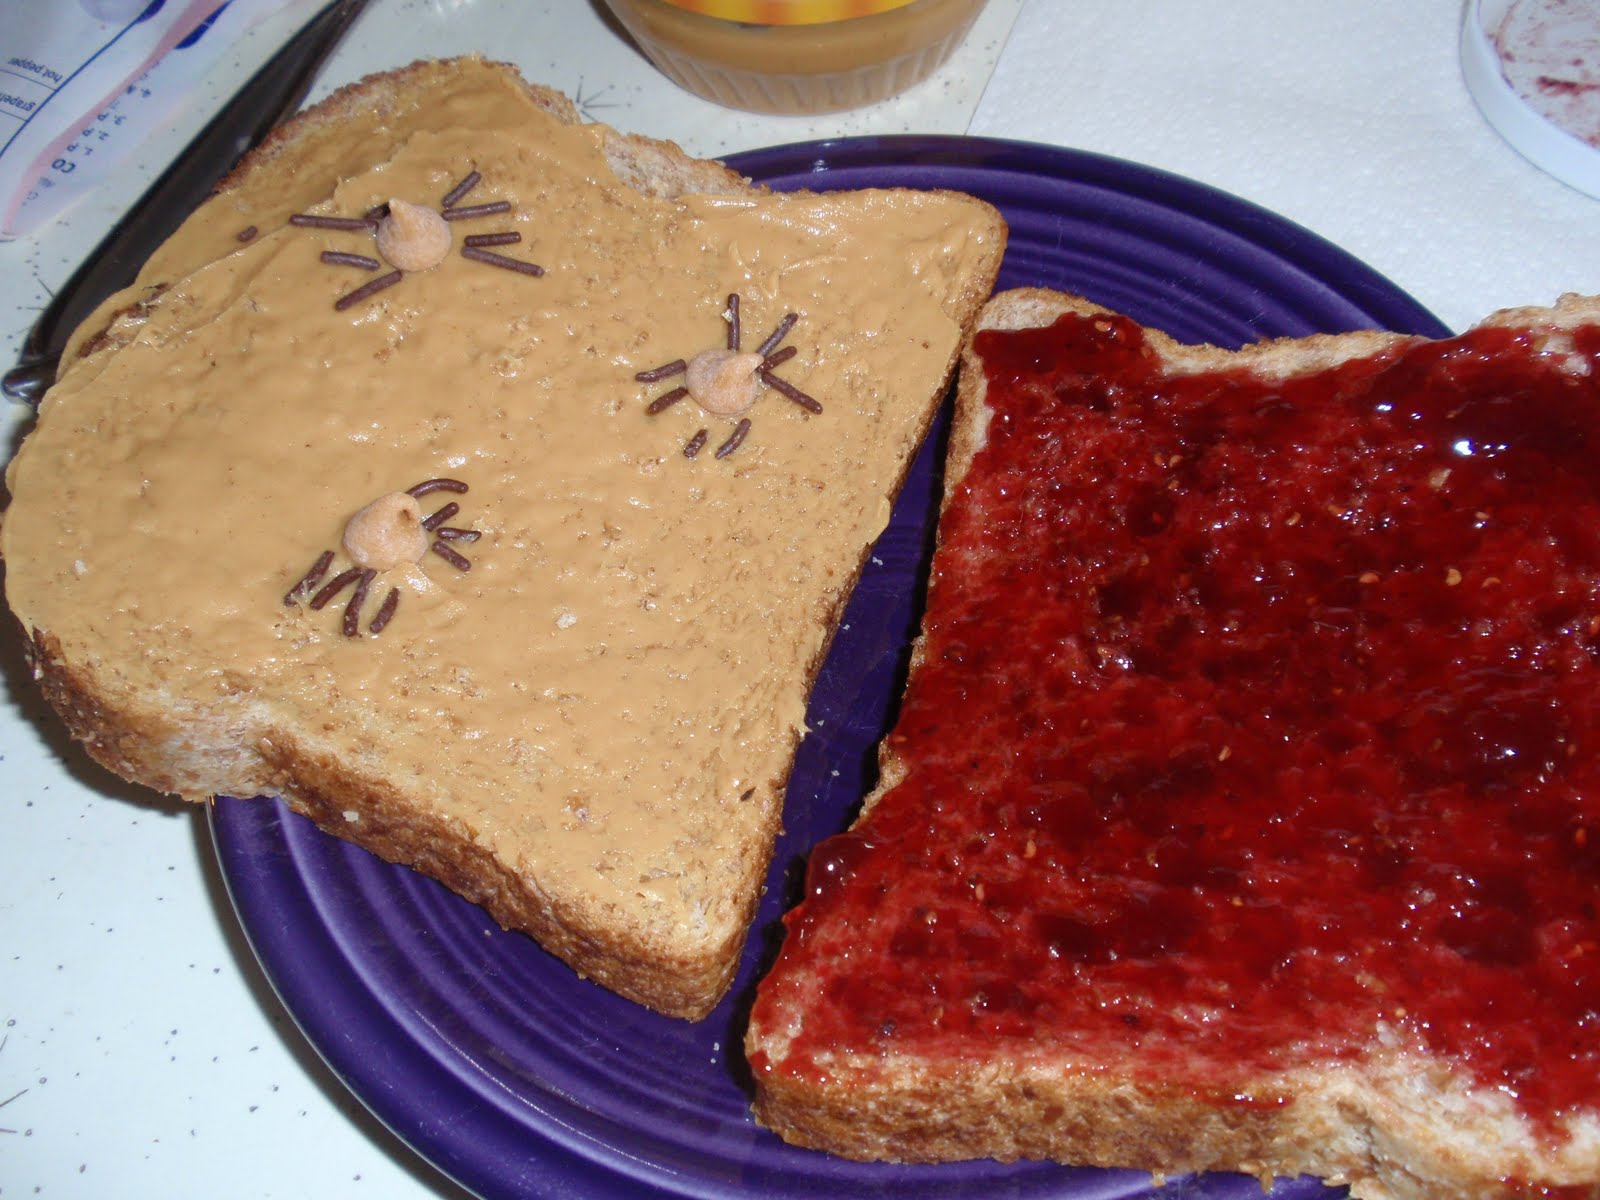 Peanut Butter And Jelly Tattoo